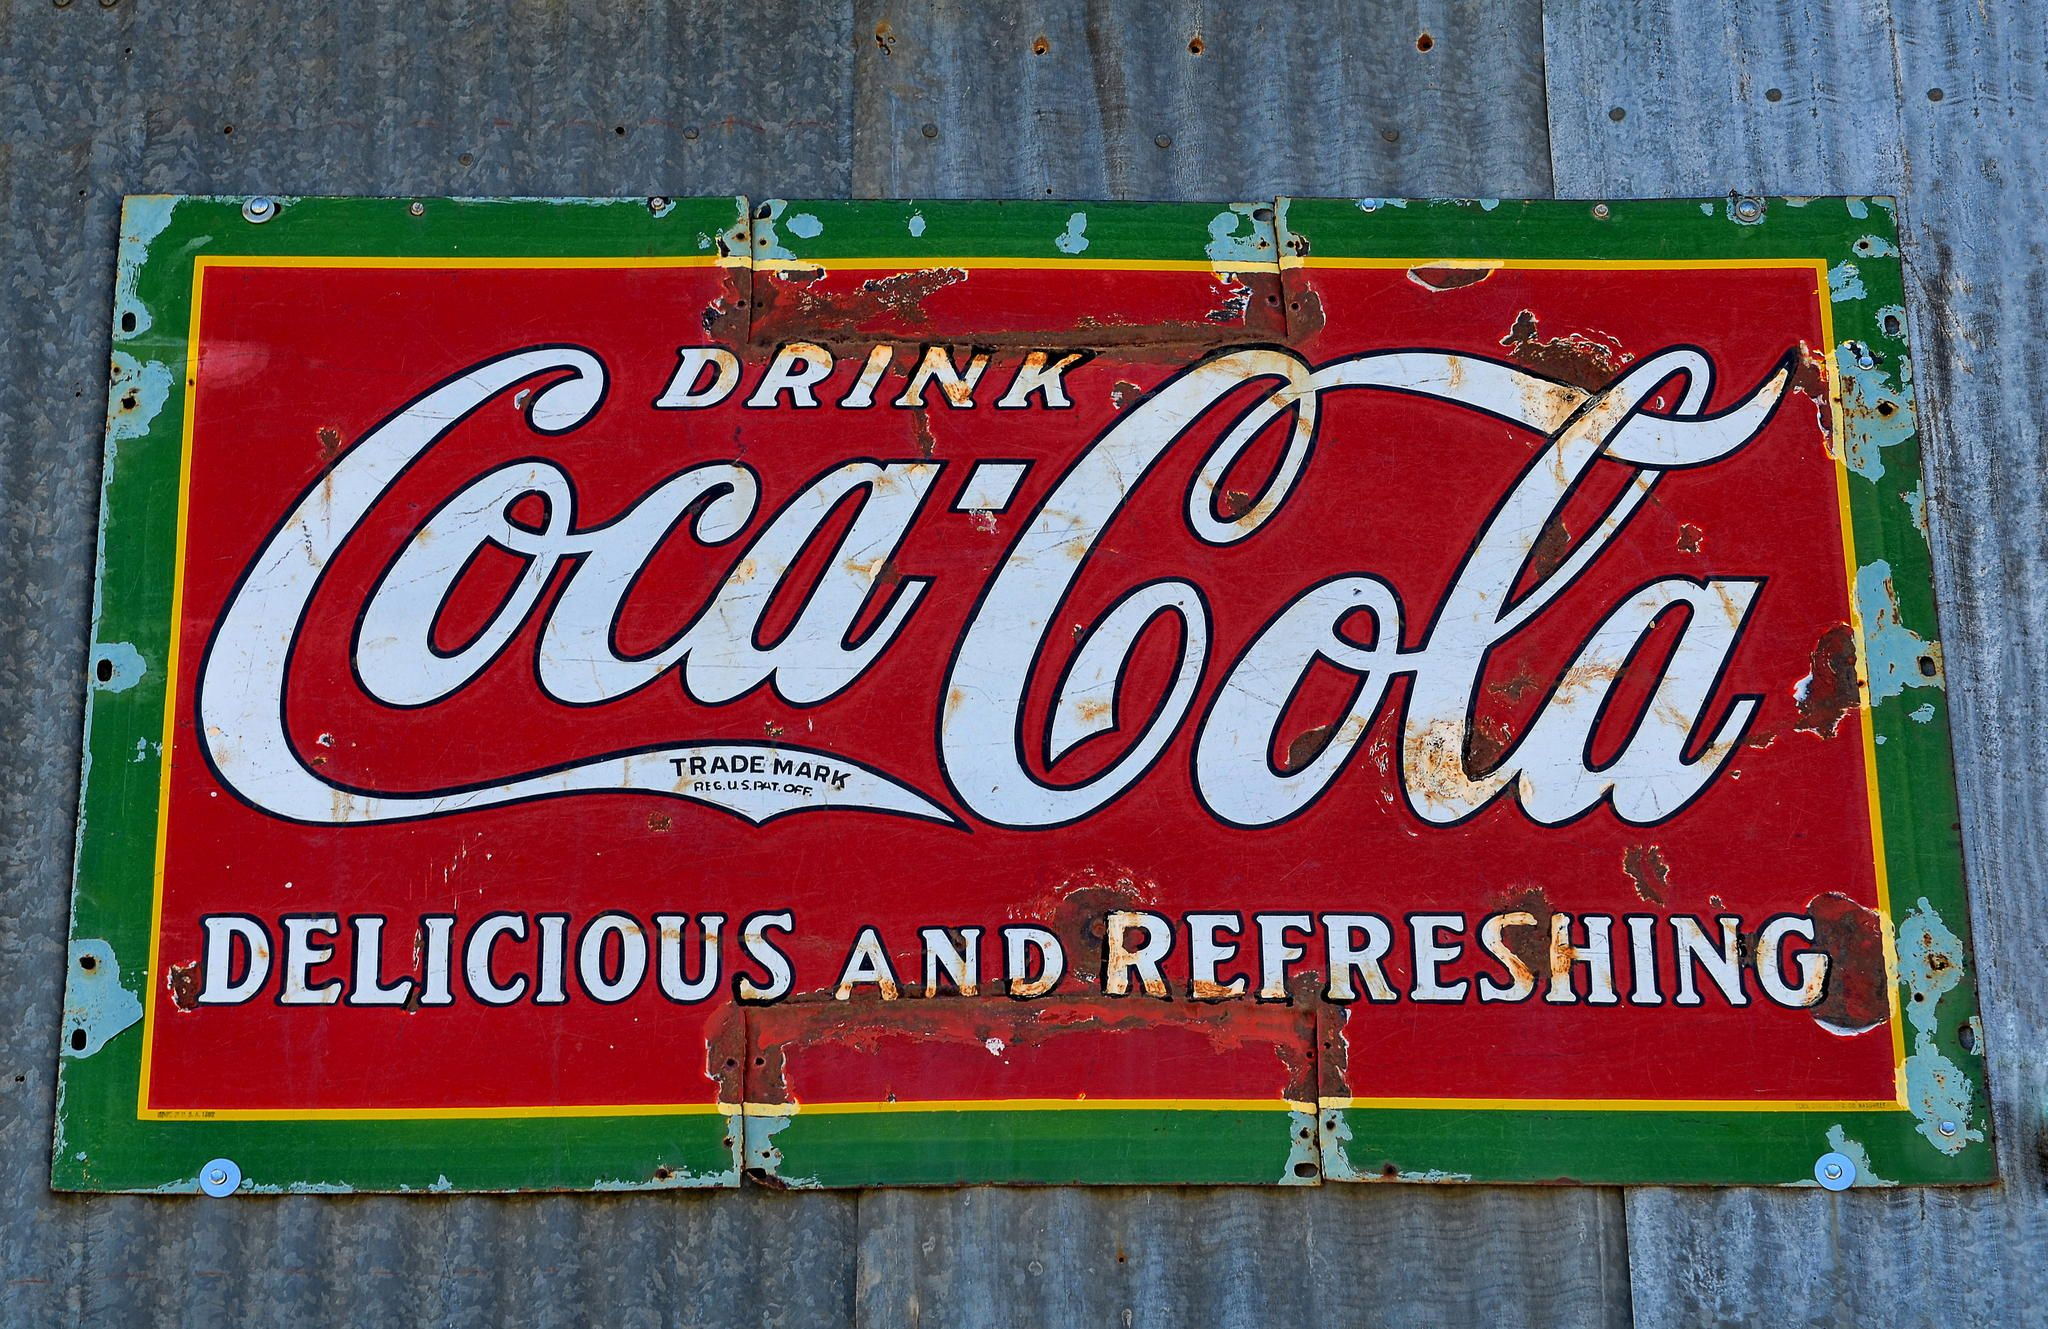 Coca Cola - An old and rusted Coca Cola sign.